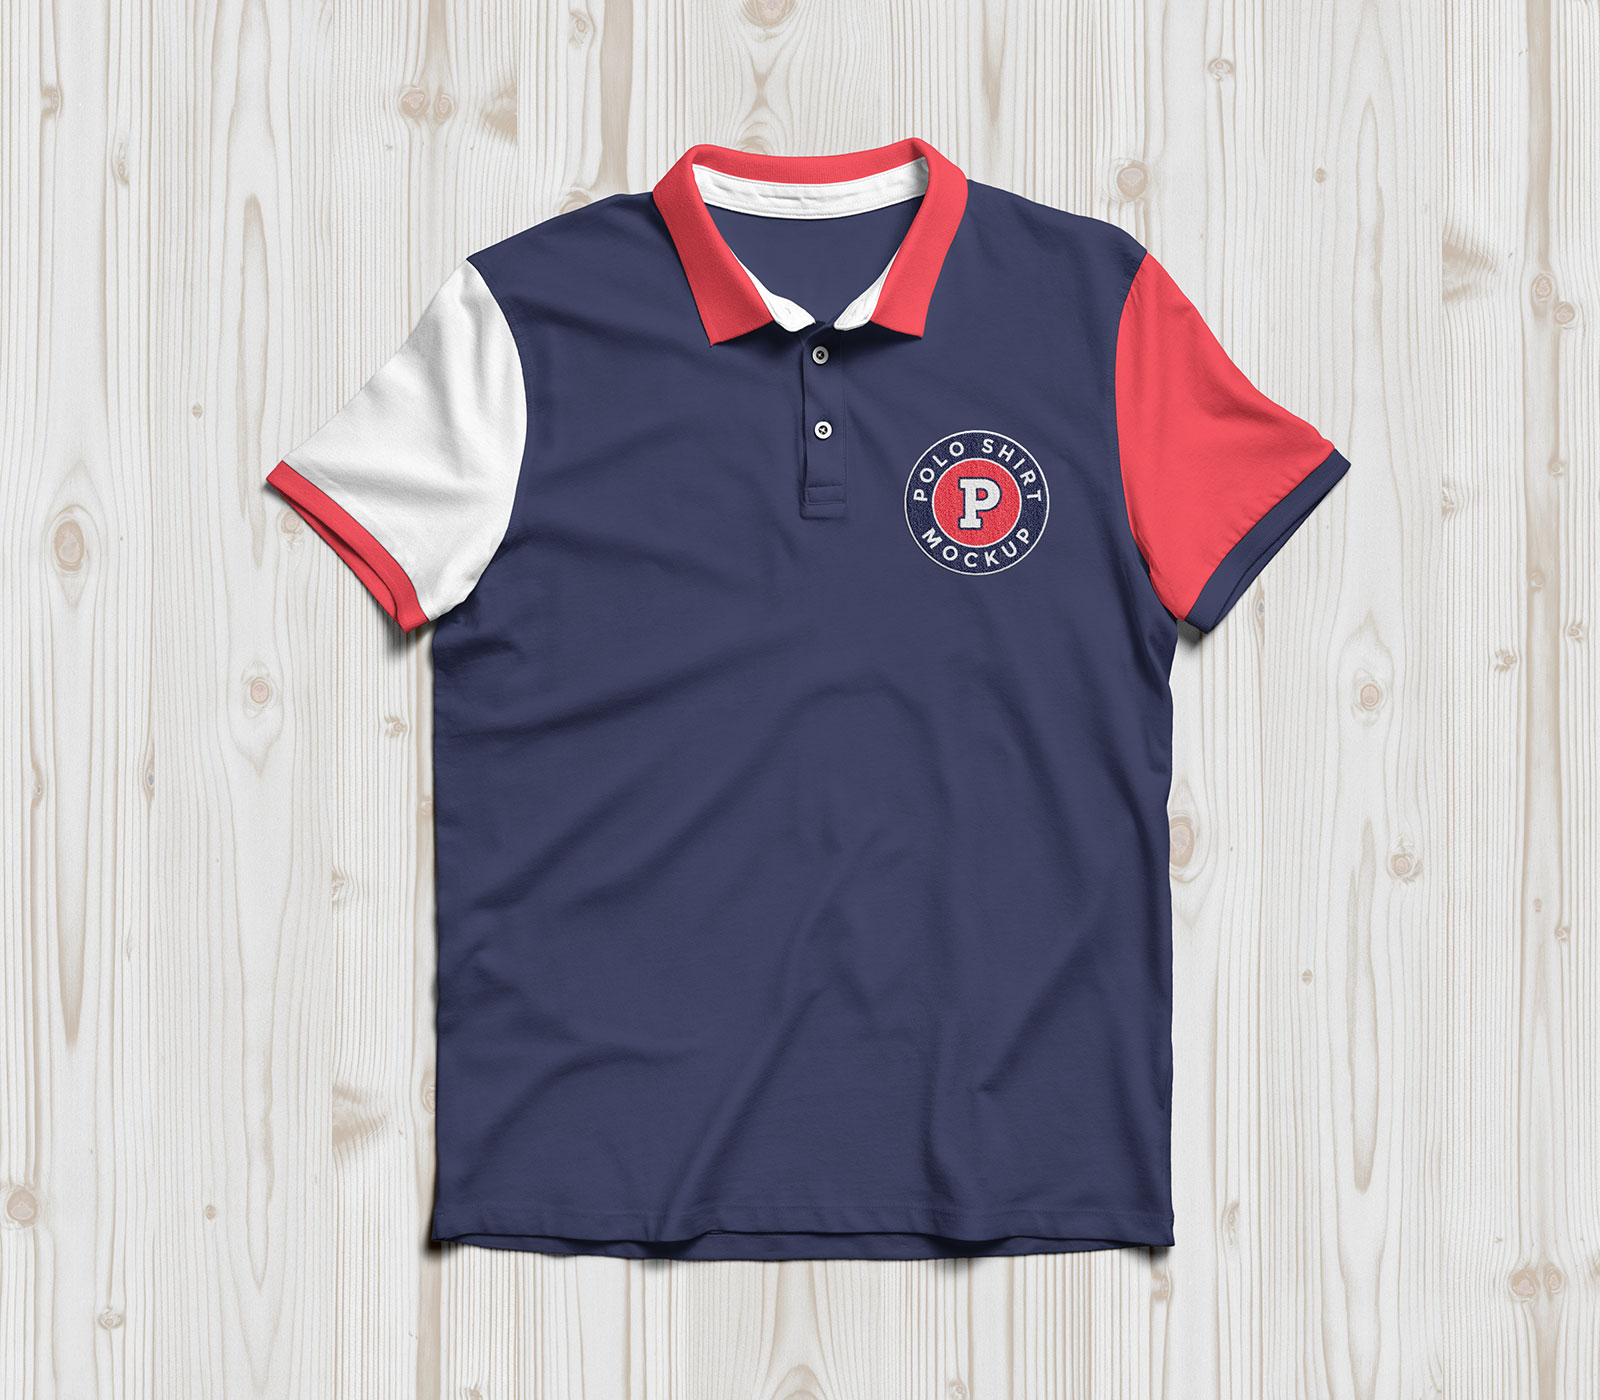 Free half sleeves polo t shirt mockup psd good mockups for Free polo shirt mockup